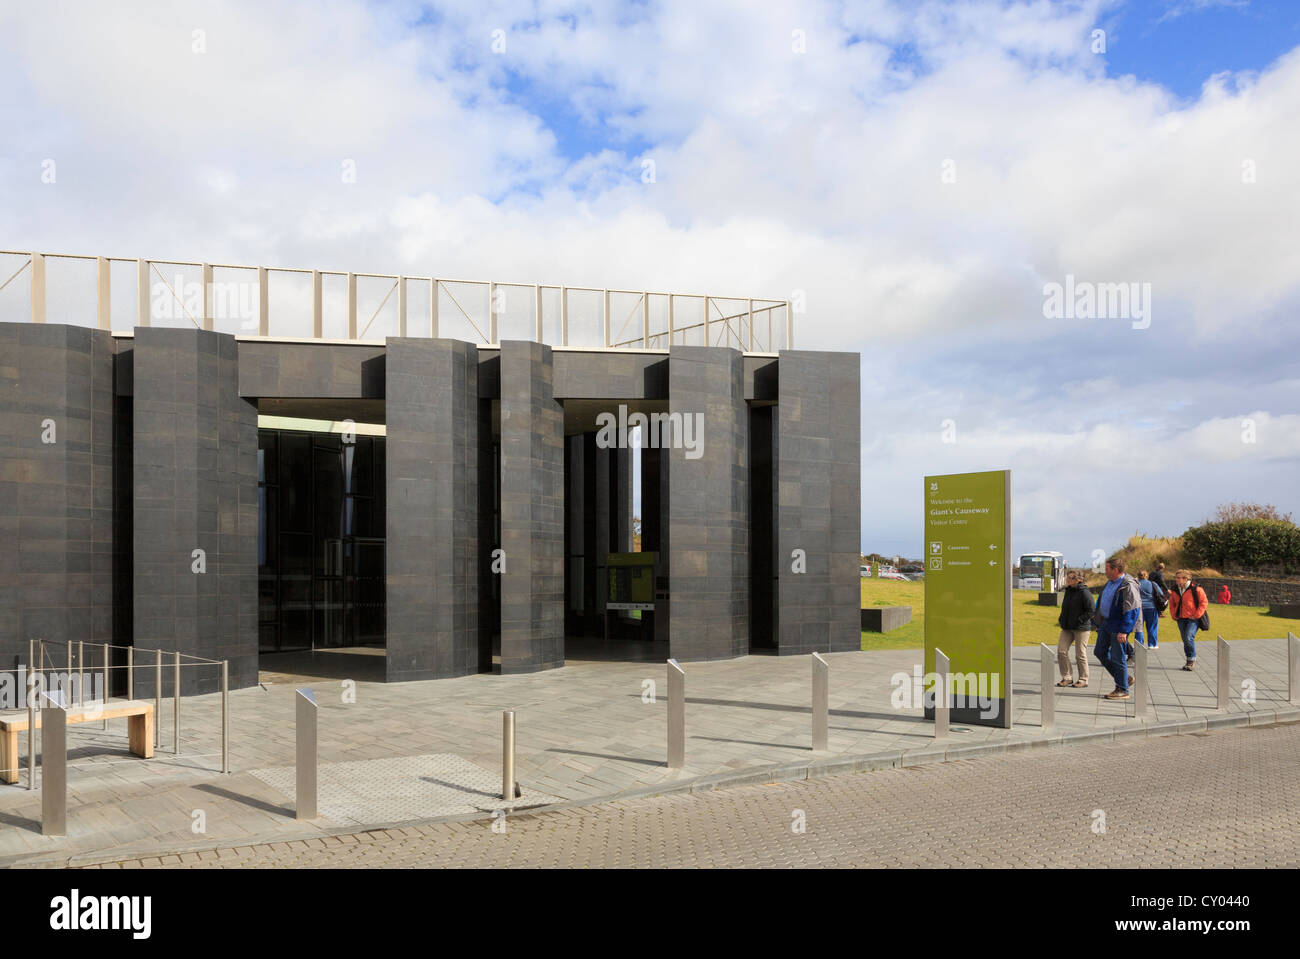 Visitors at the new Giant's Causeway visitor centre building near Bushmills, County Antrim, Northern Ireland, - Stock Image